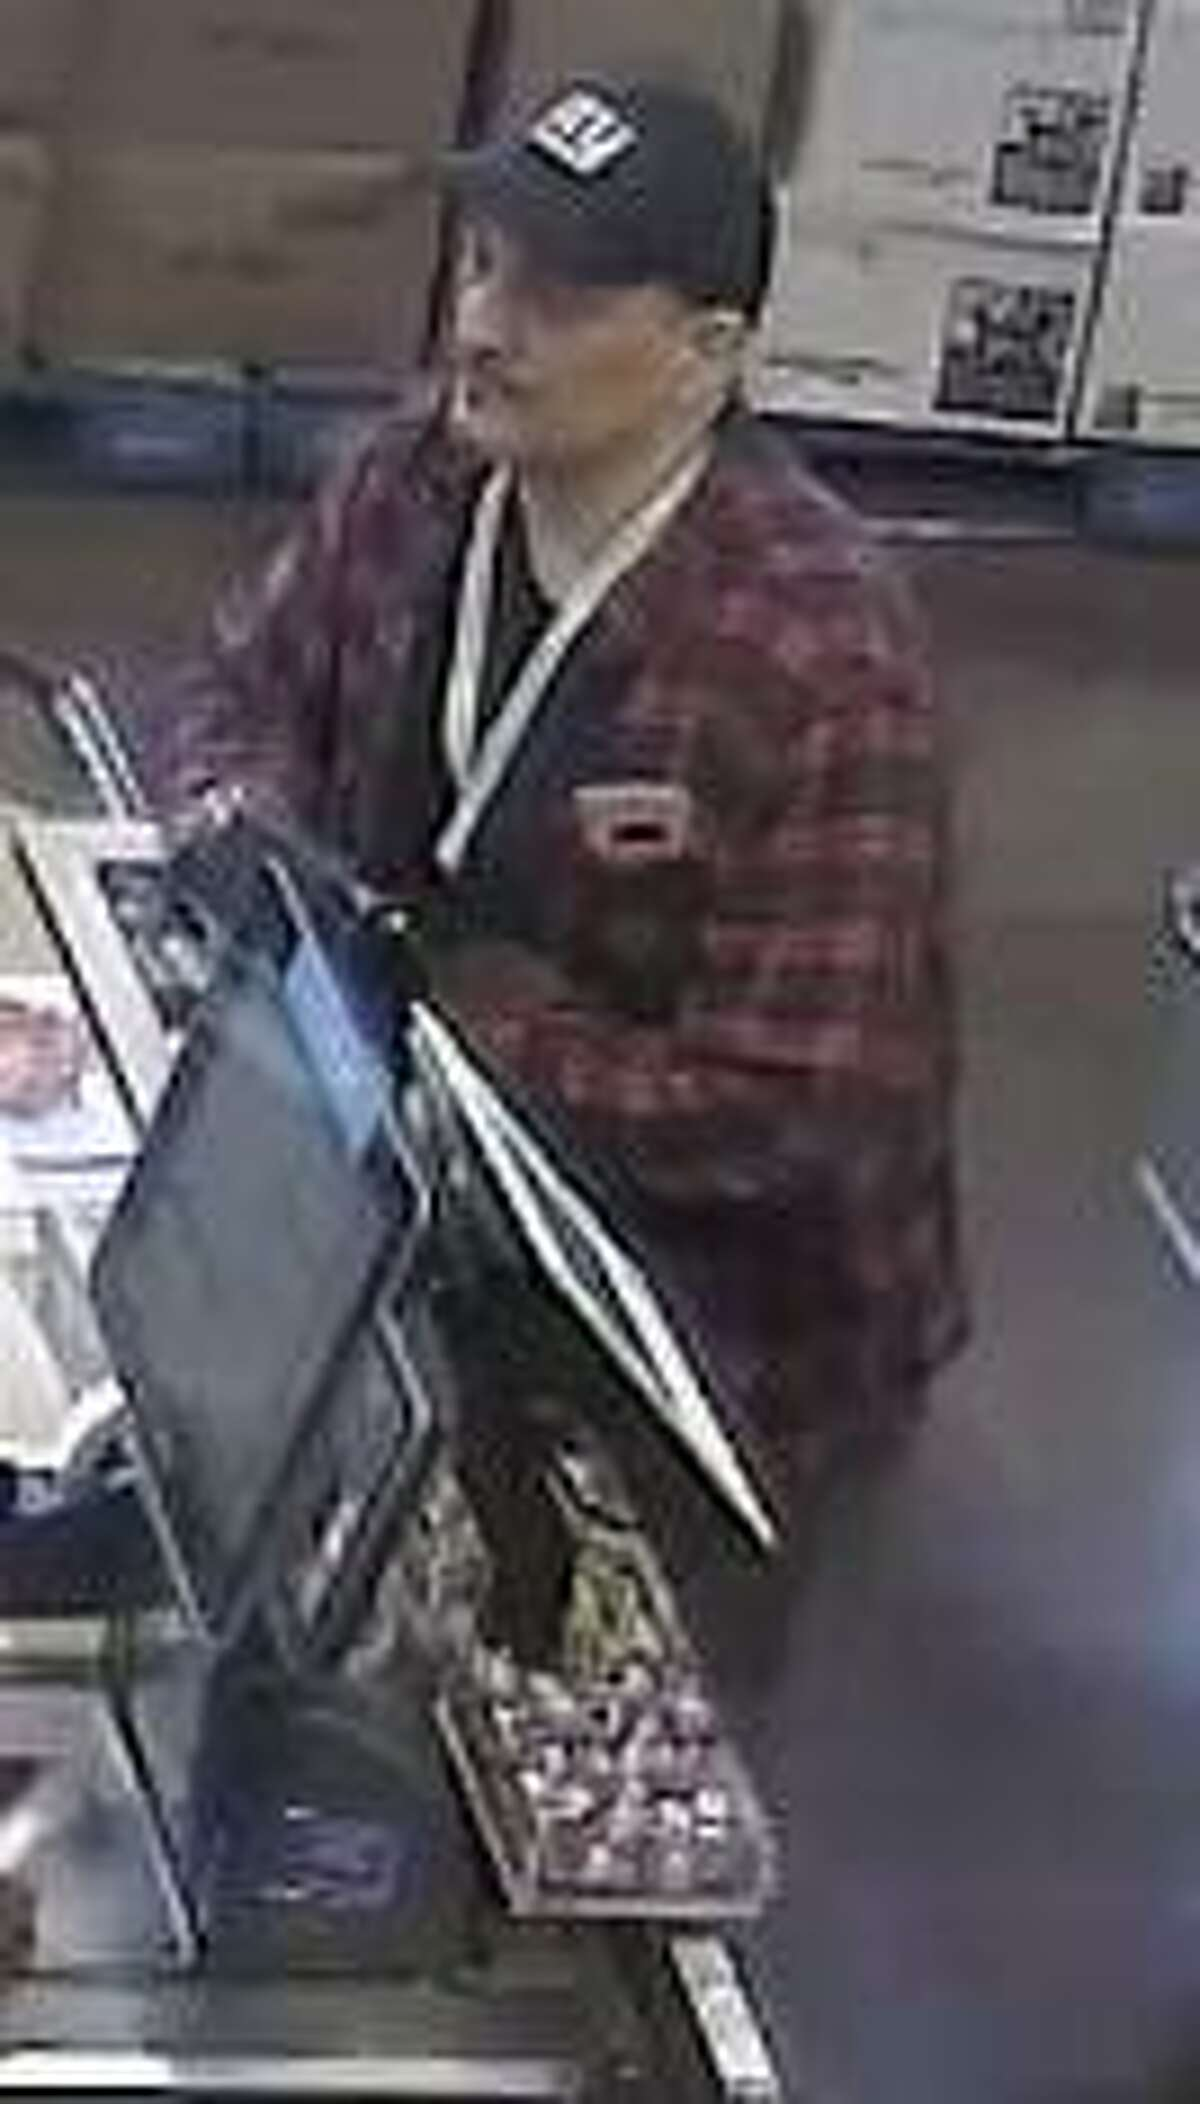 Westport police believe the two people pictured here might have been involved in the theft of some cash and credit cards from an area Whole Foods. Anyone with information regarding the identities of the two pictured individuals is asked to contact the Westport Police Department Detective Bureau at 203-341-6080.